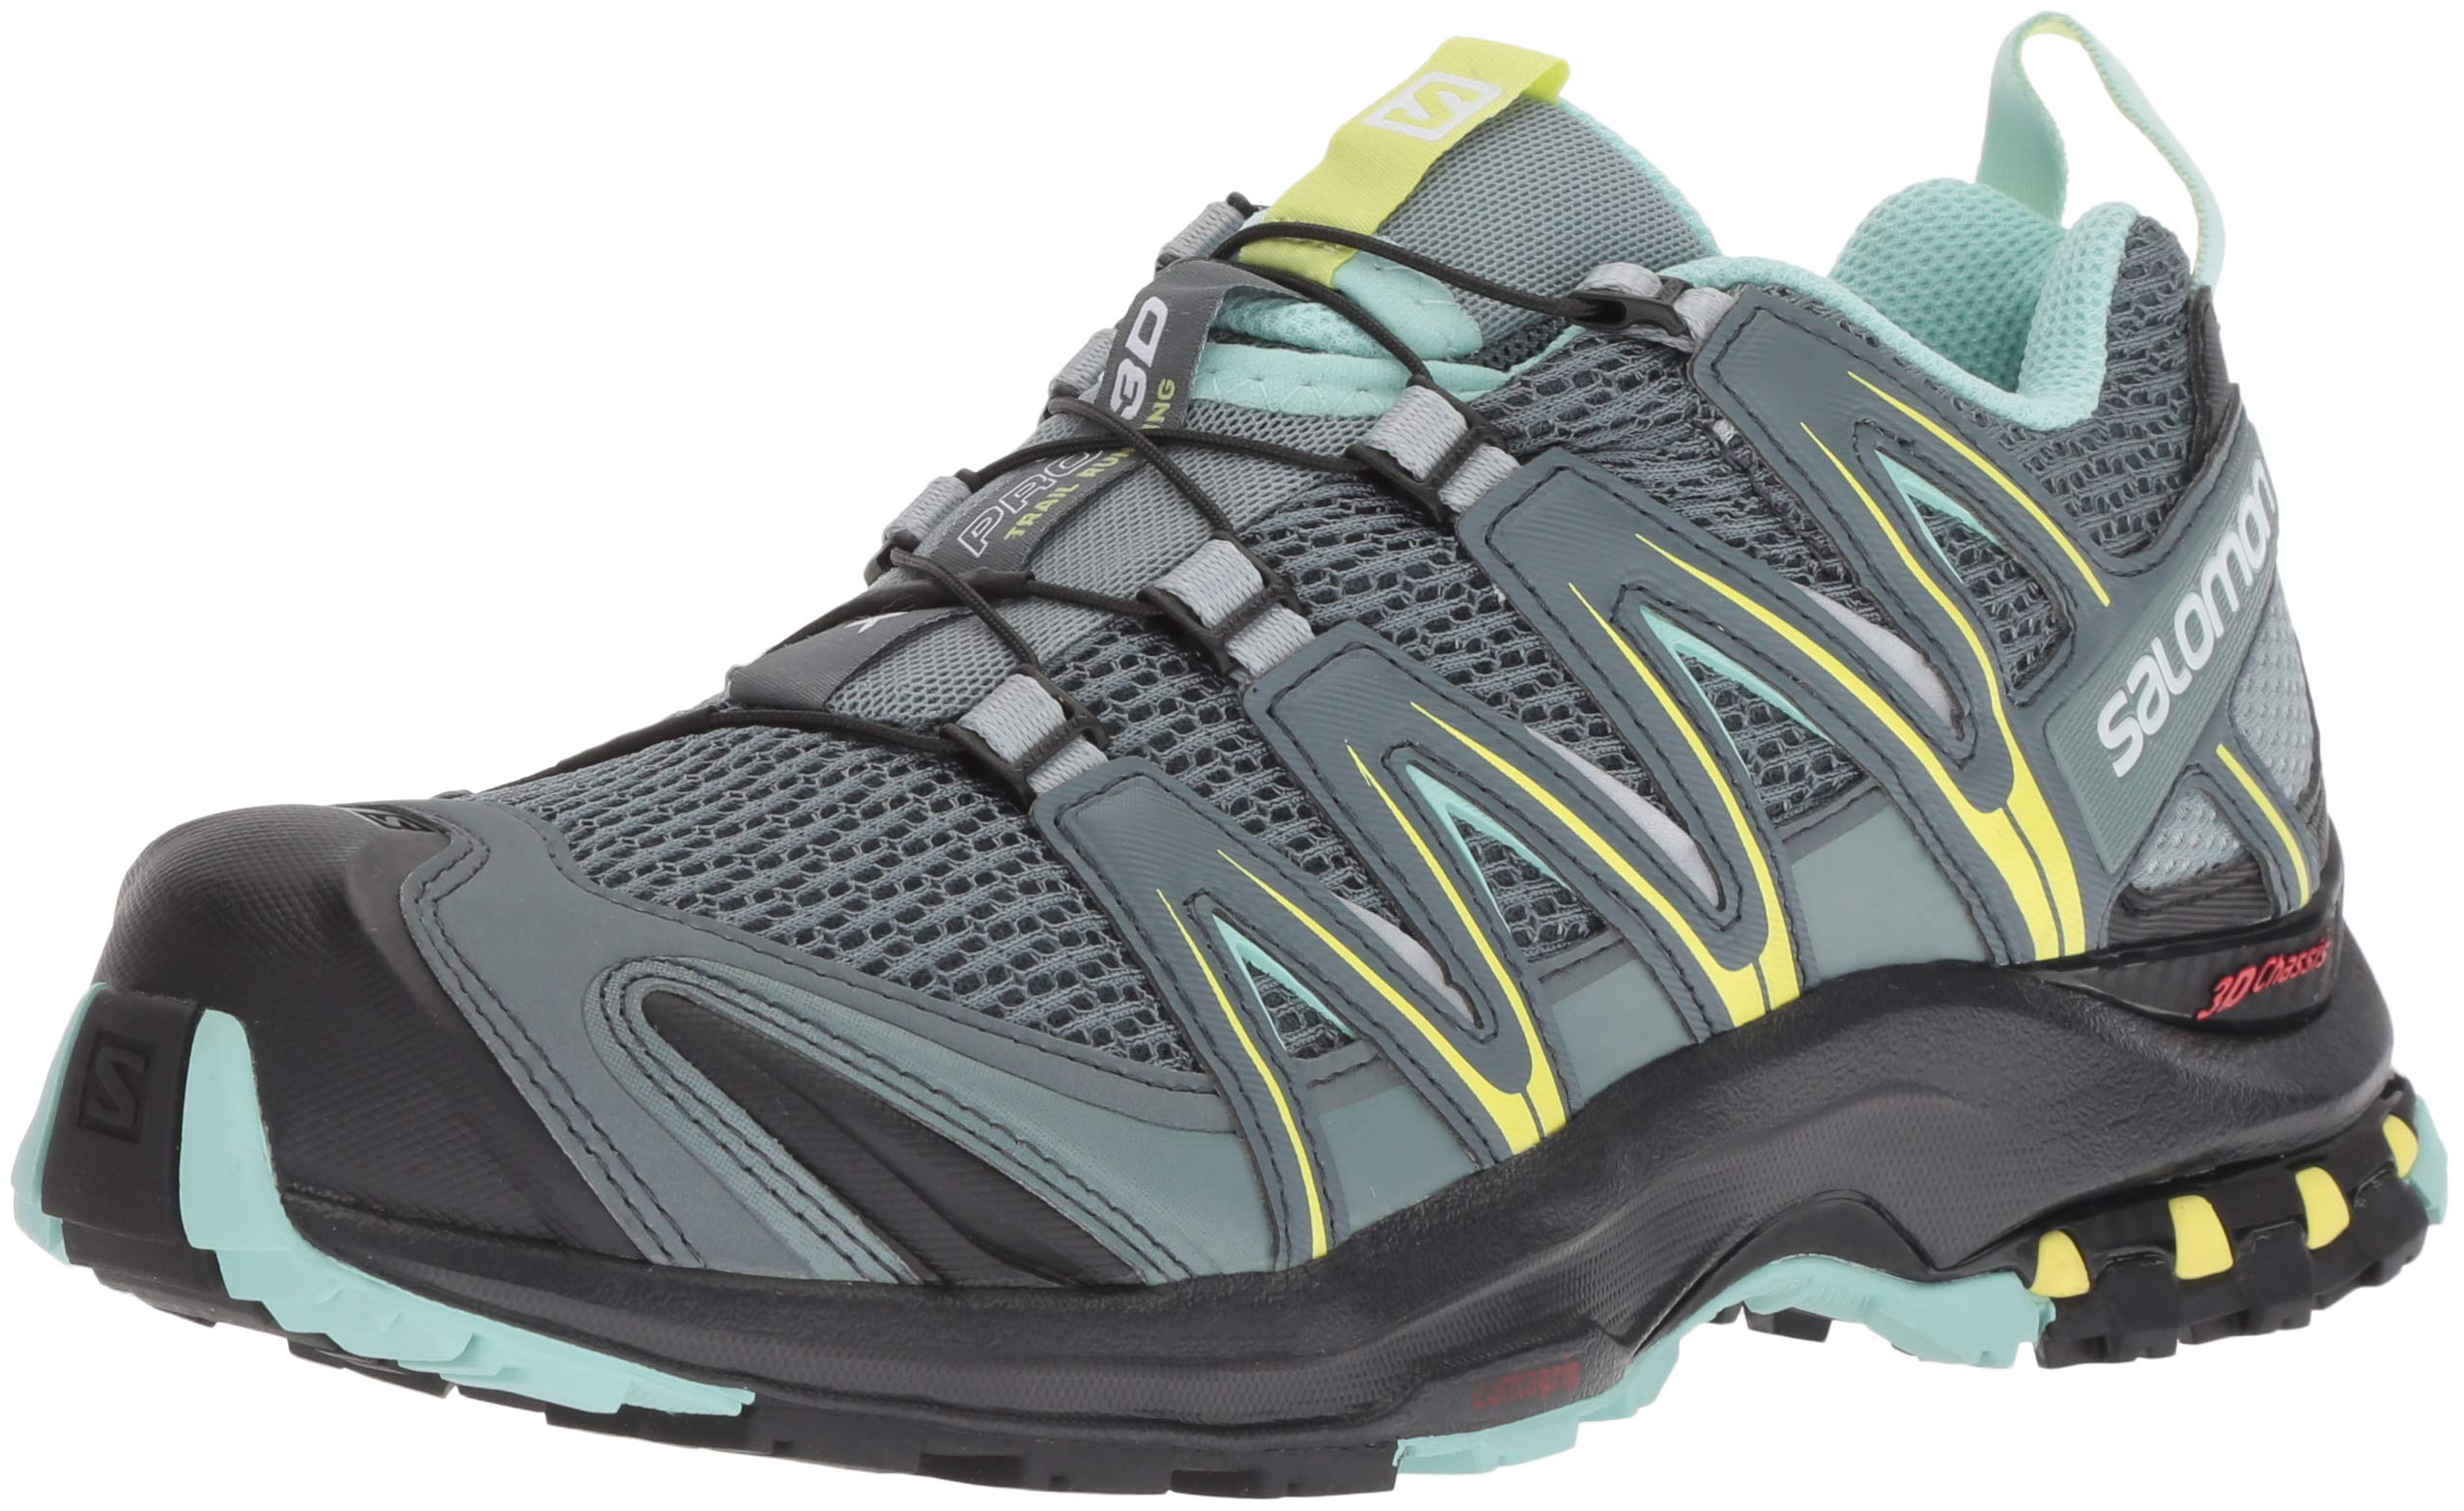 SALOMON Women's XA PRO 3D W Trail Running Shoe, Stormy Weather/Lead/Eggshell Blue, 9 M US by SALOMON